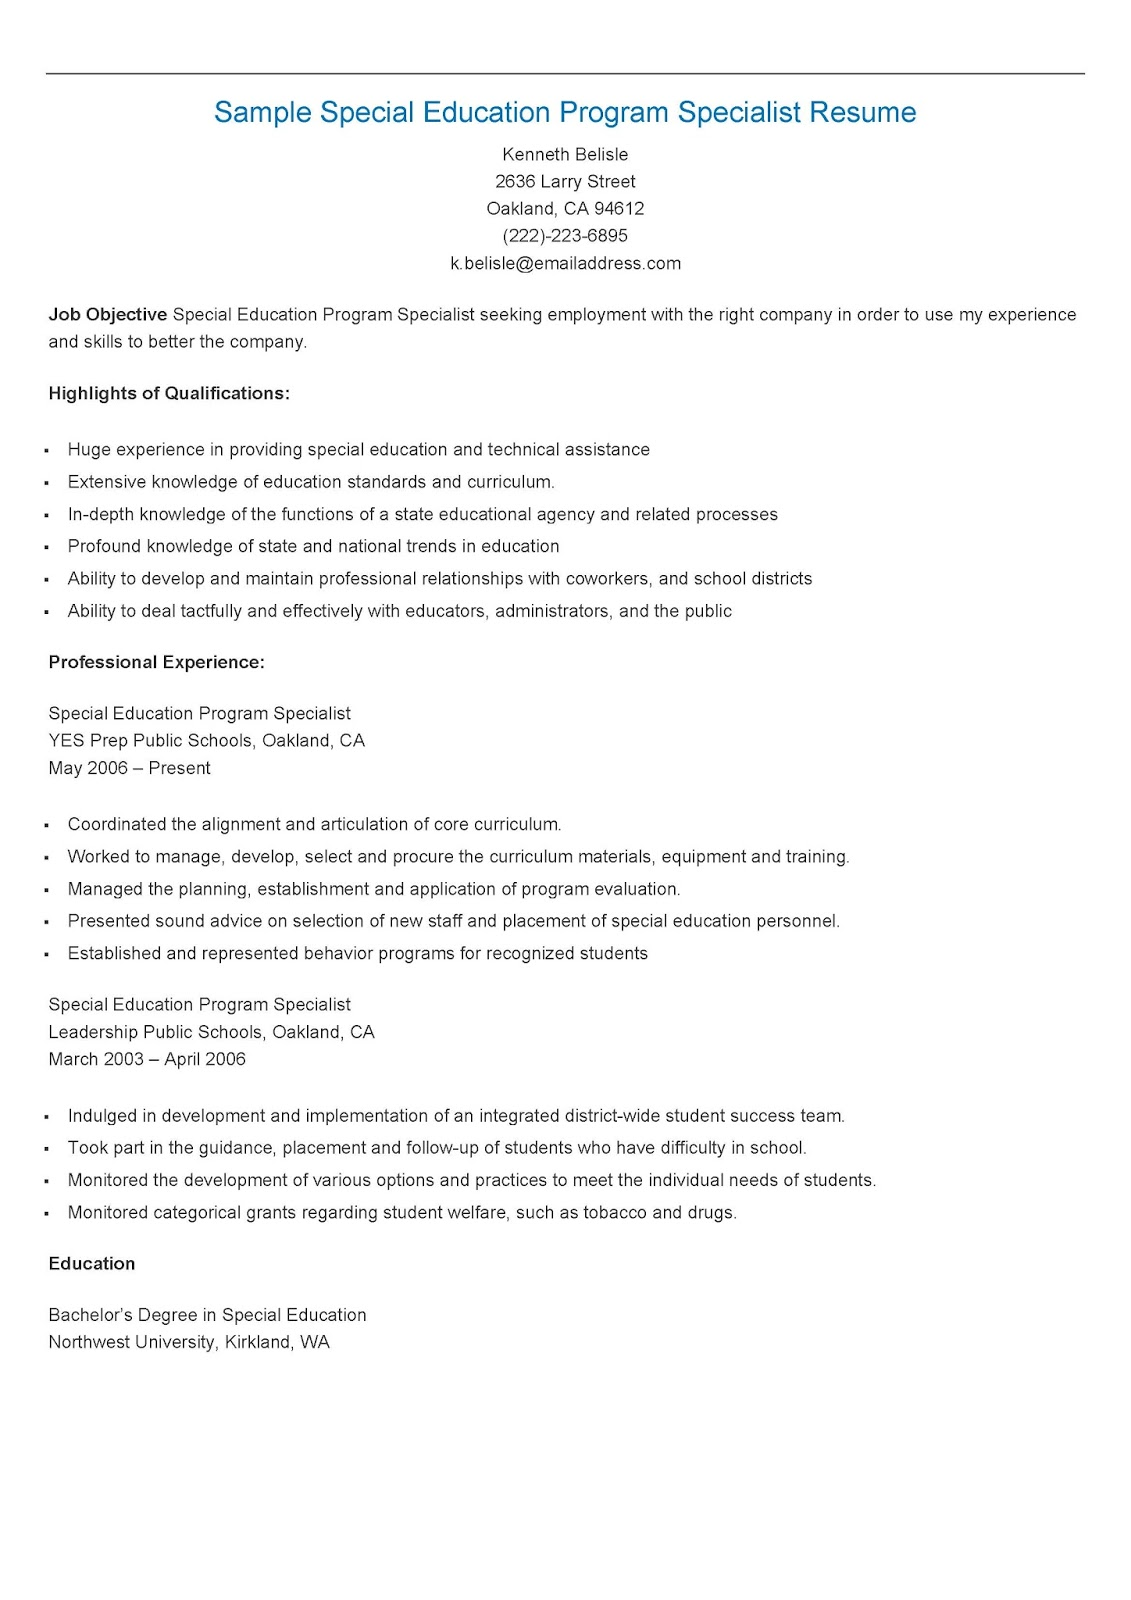 resume samples sample special education program